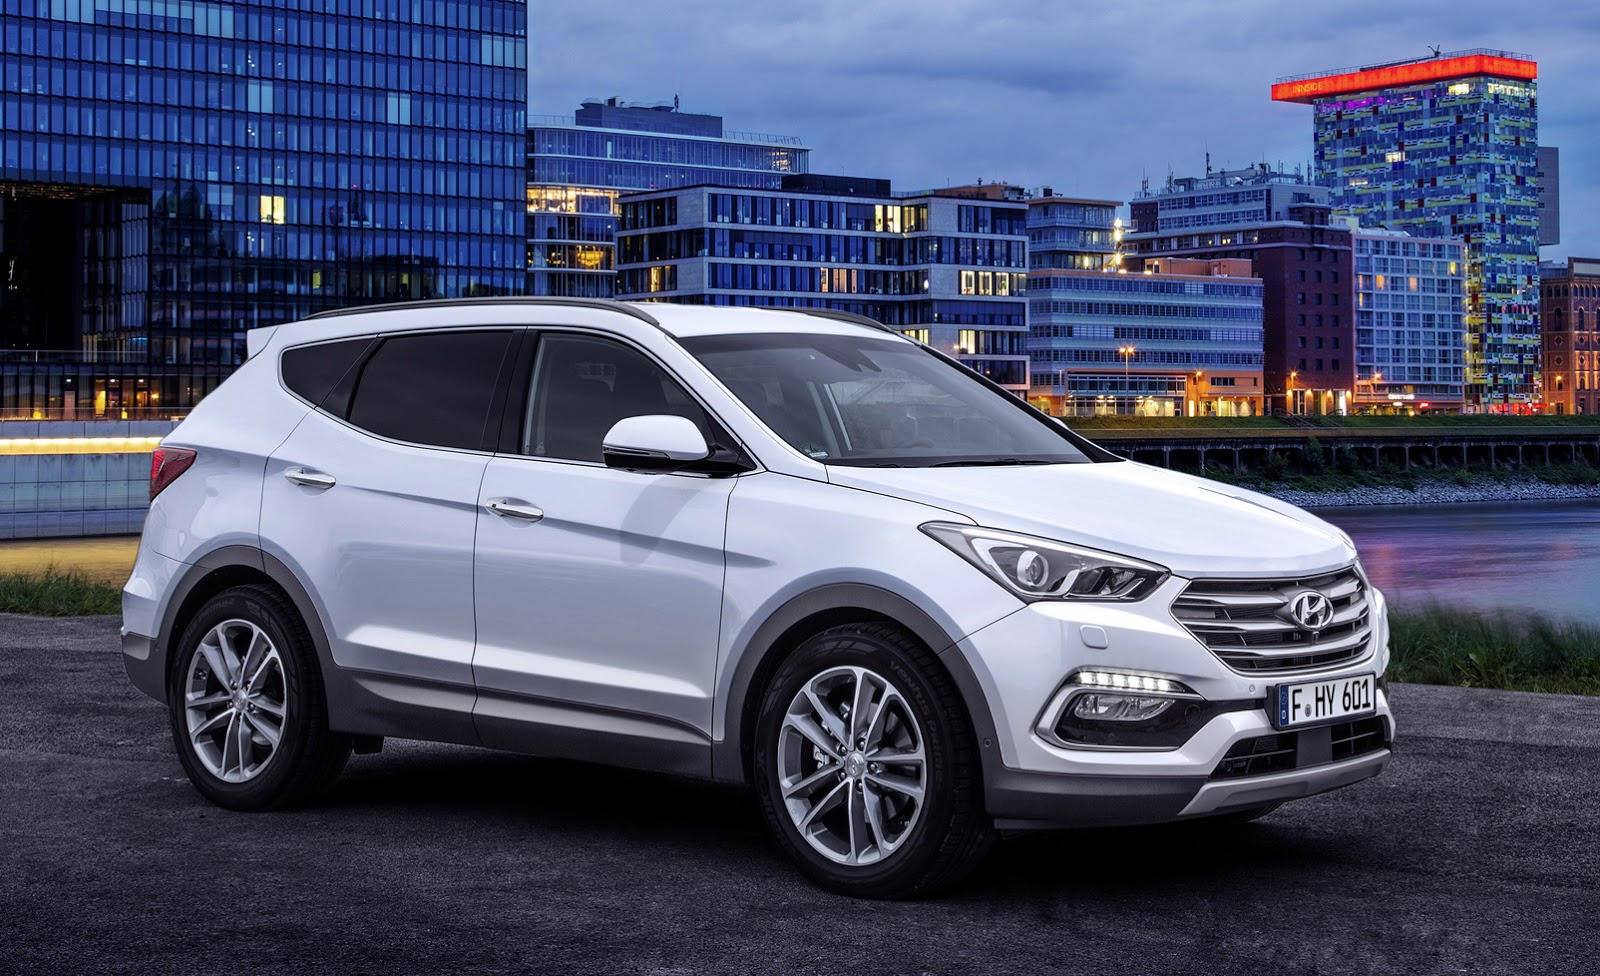 Hyundai Santa Fe Specifications, Price, Mileage, Pics, Review